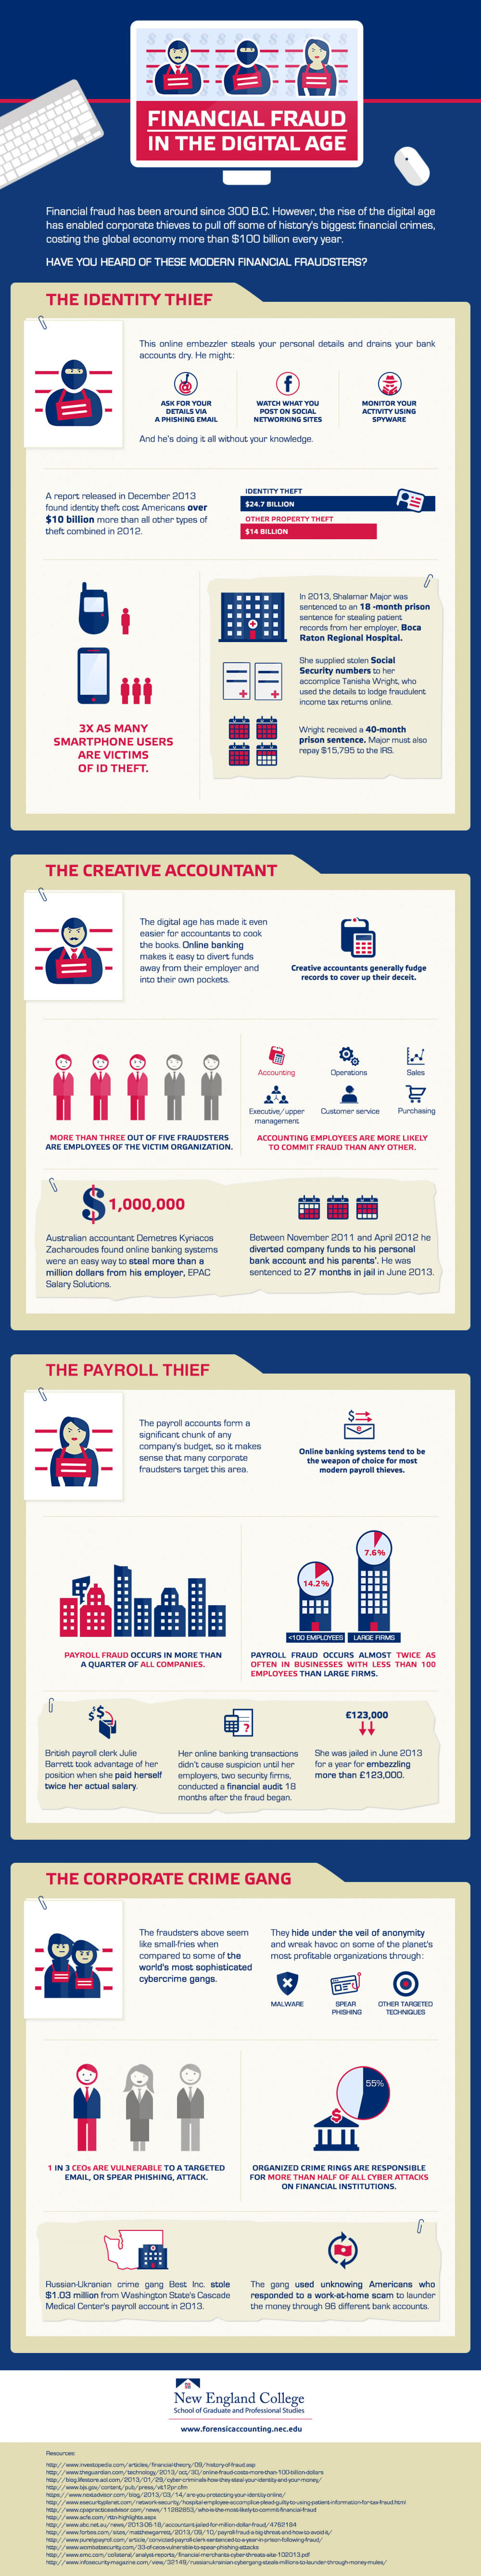 Financial Fraud in the Digital Age Infographic